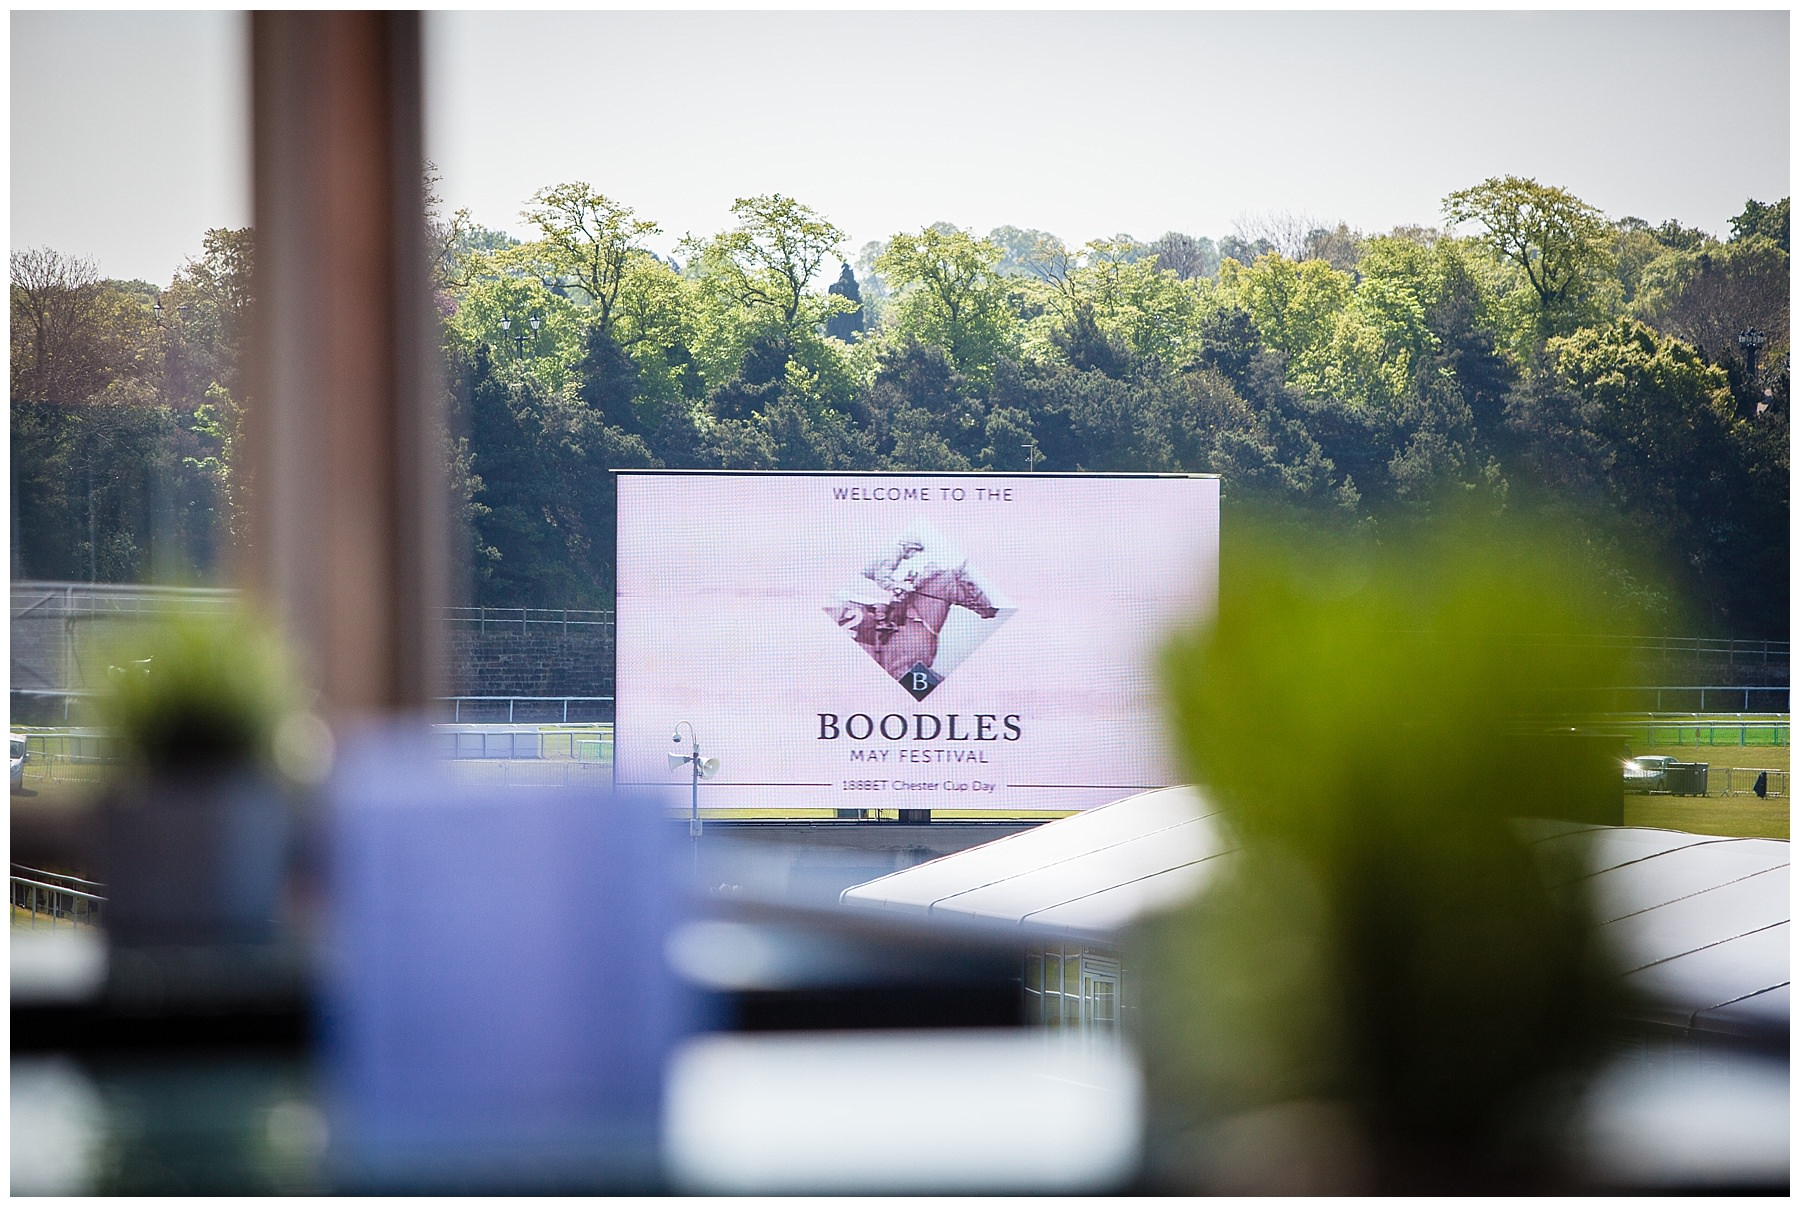 Boodles signage at chester race course - shropshire photographer